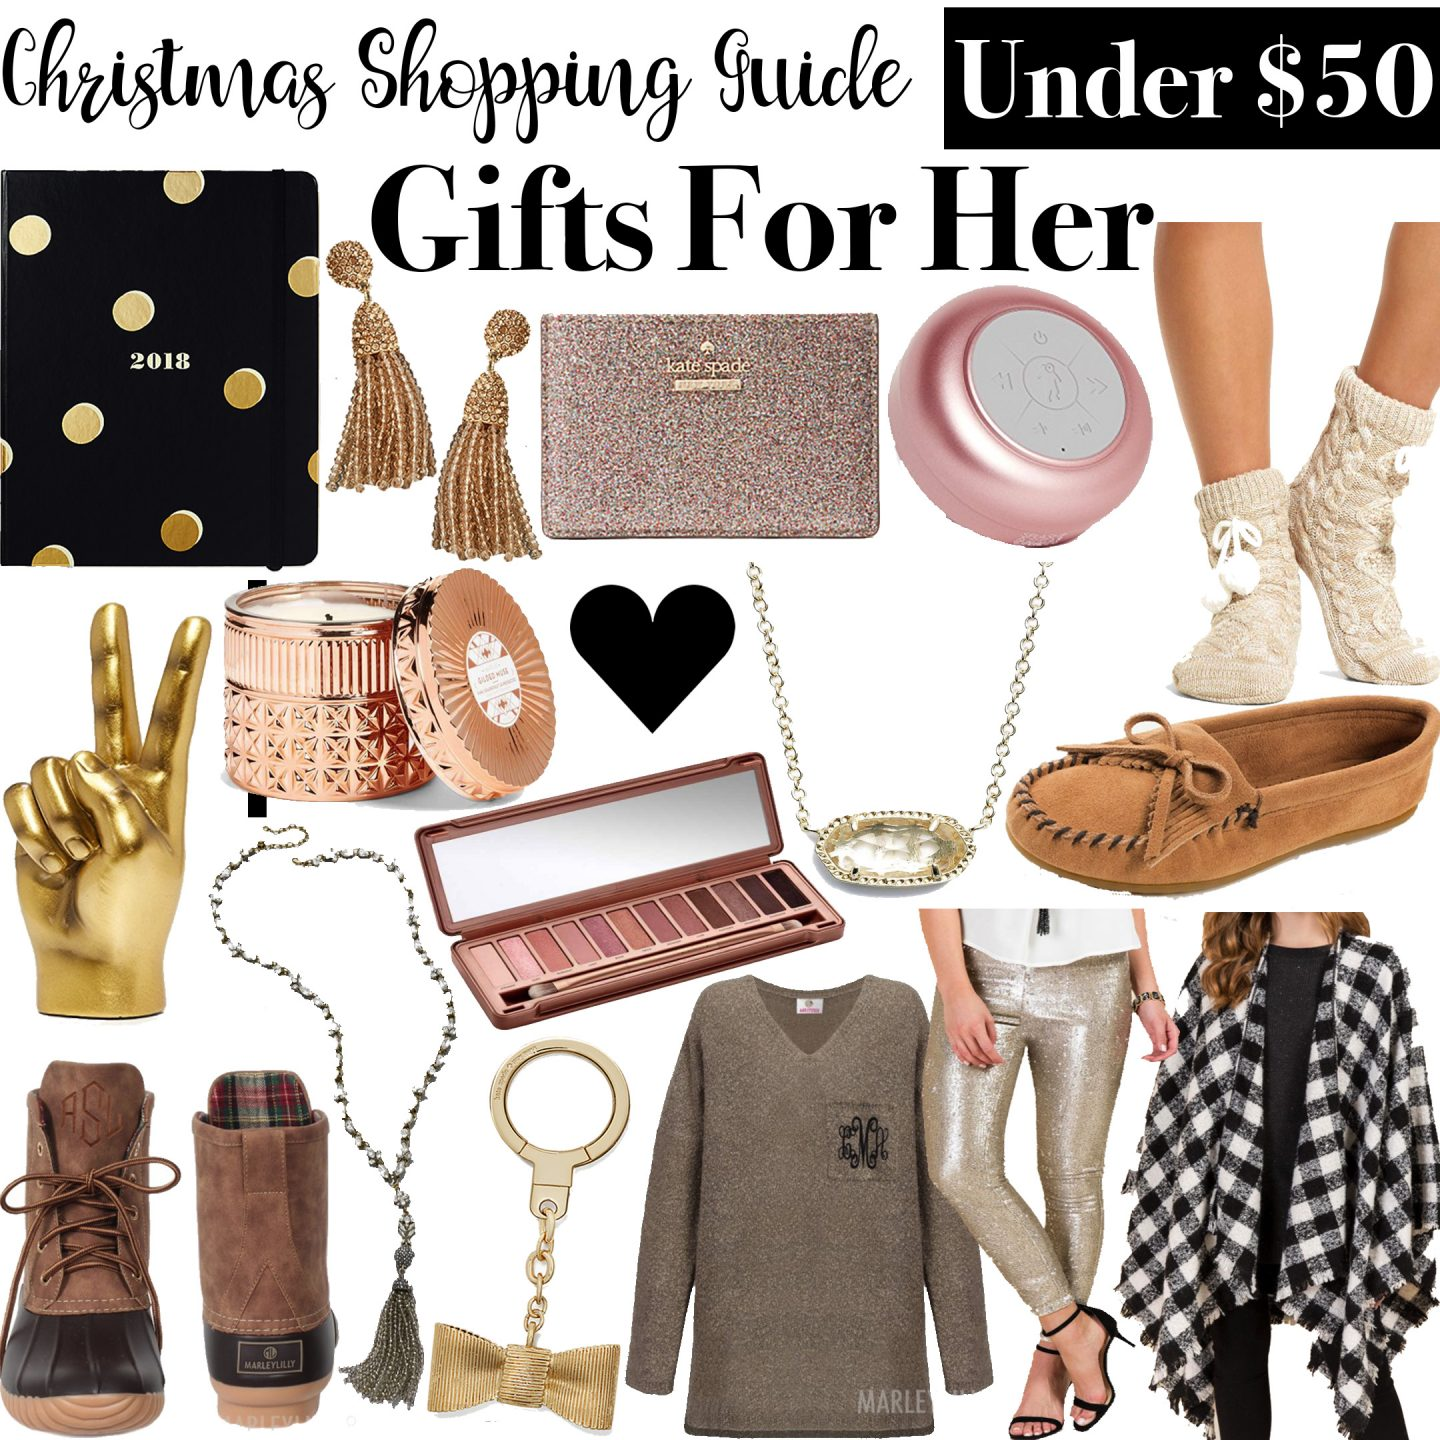 Christmas Shopping Guide: Gifts for Her Under $50 by Washington DC blogger Styled Blonde